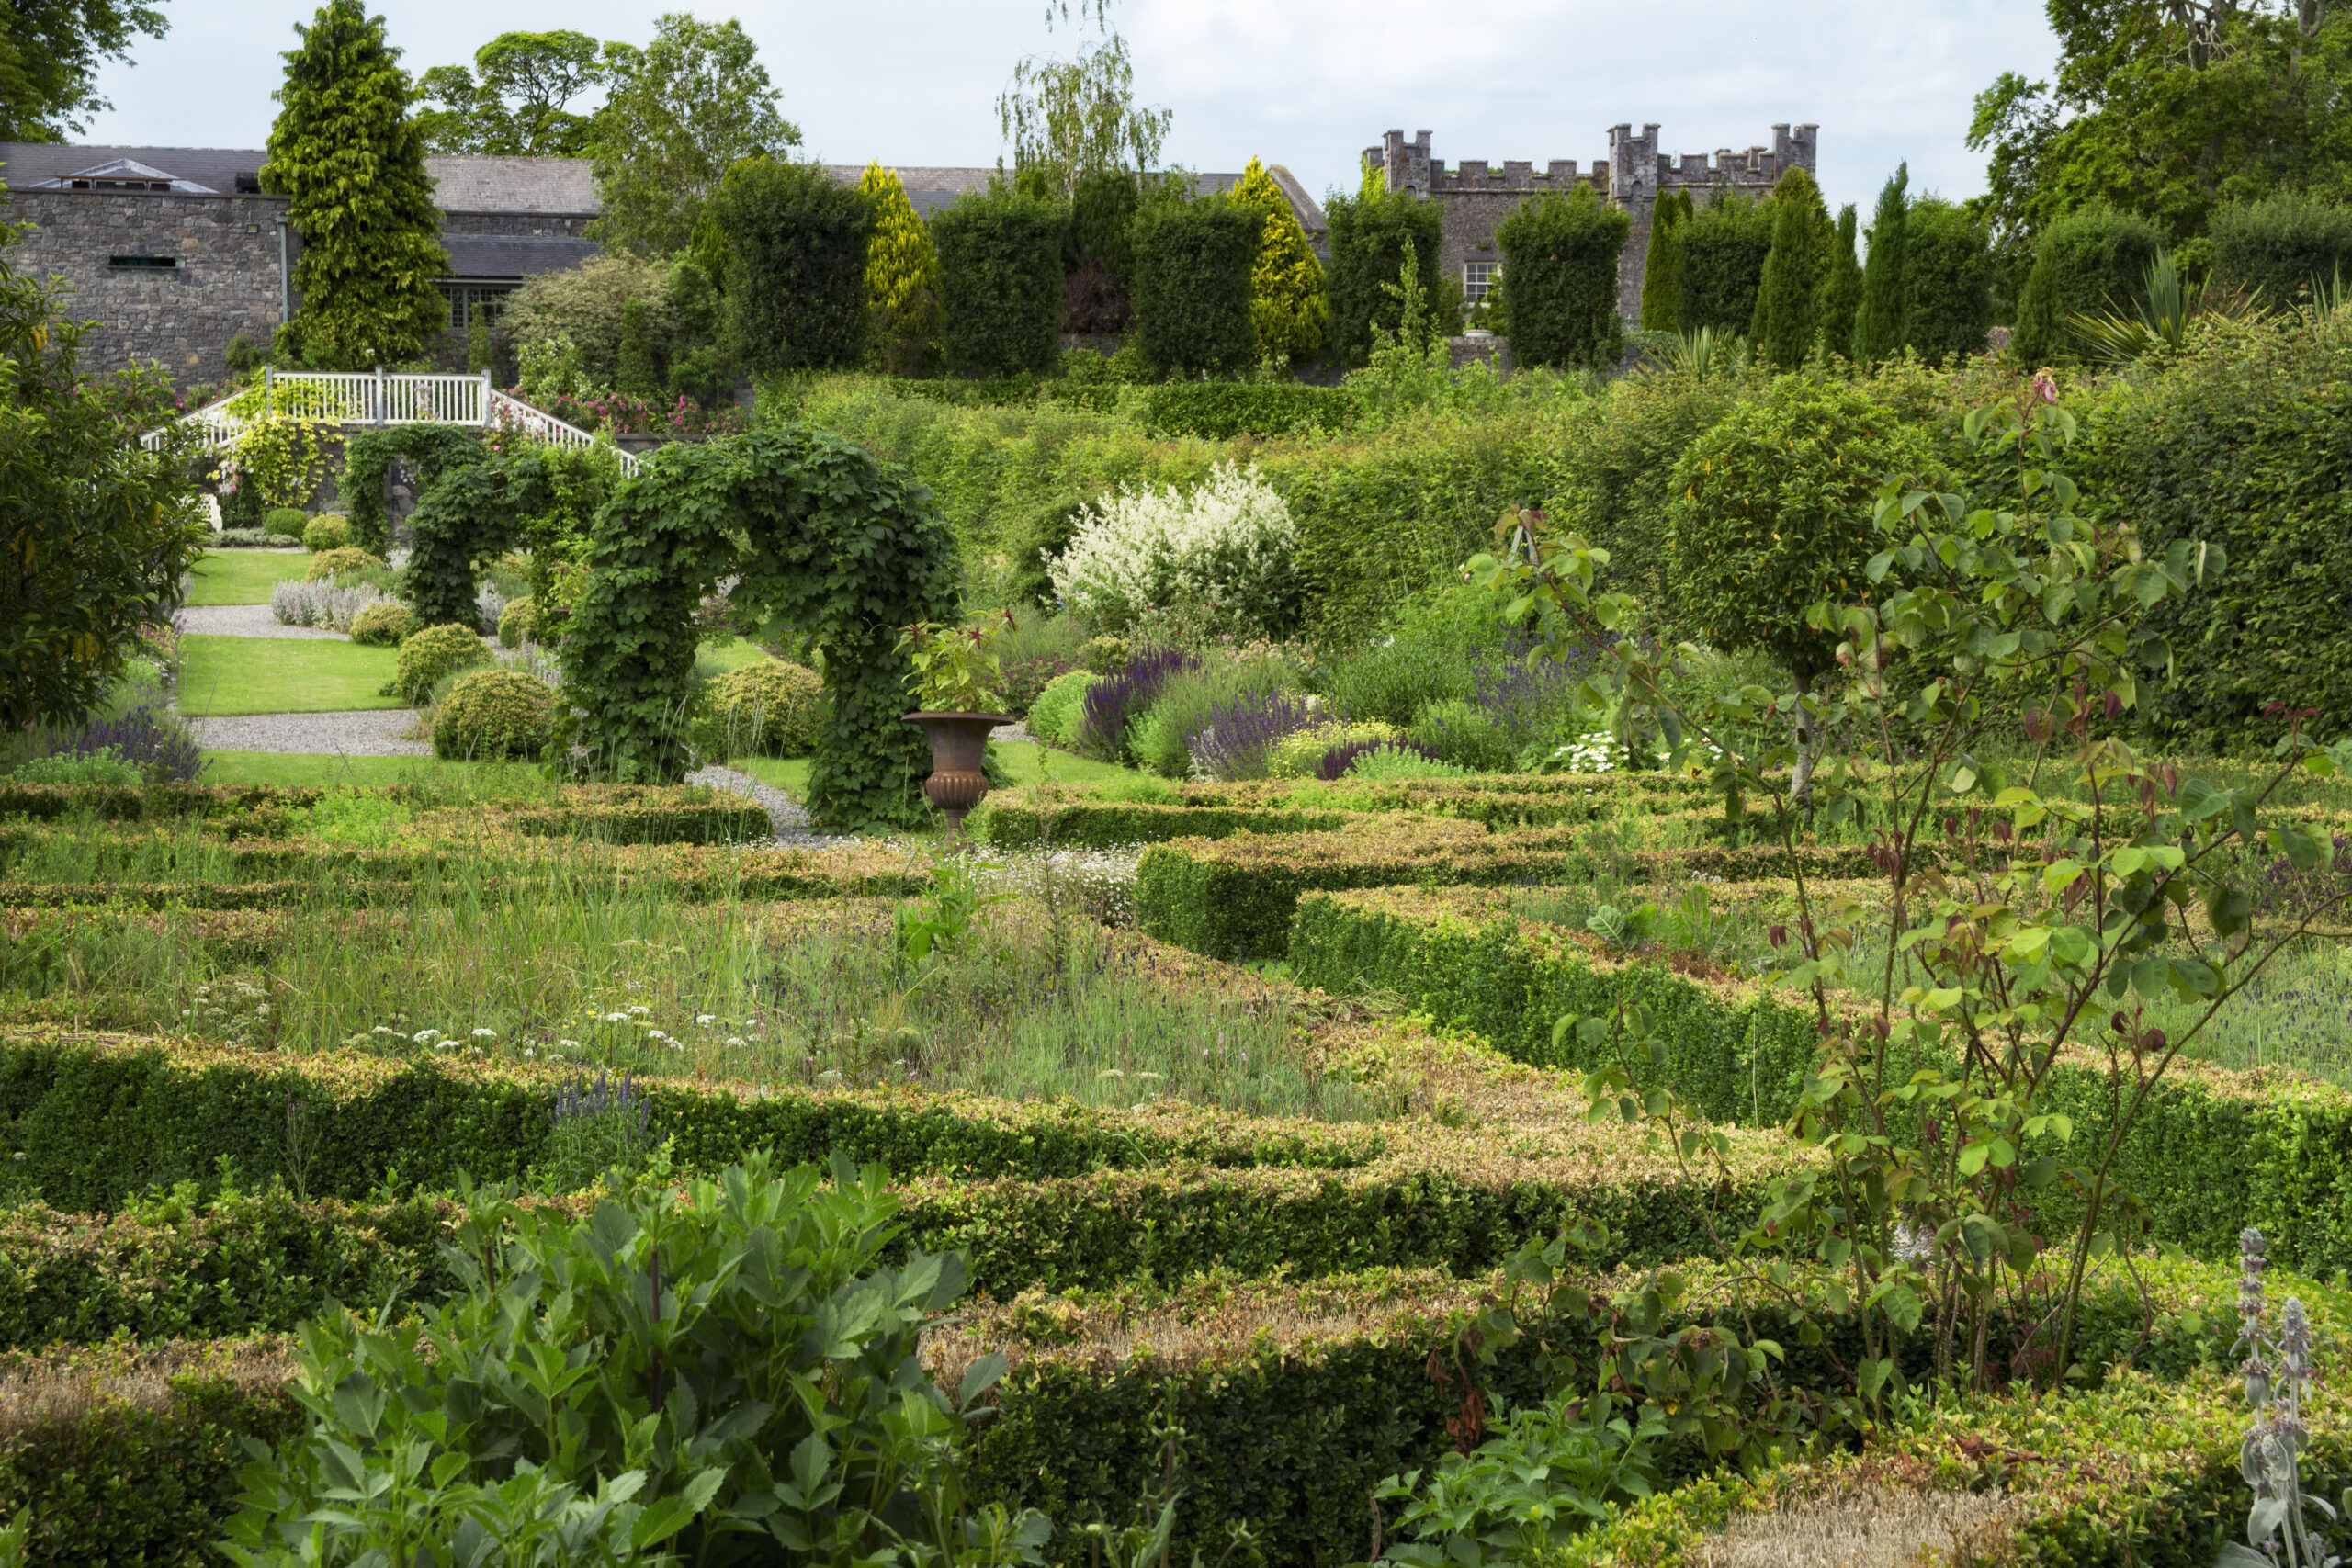 Castle Durrow Garden